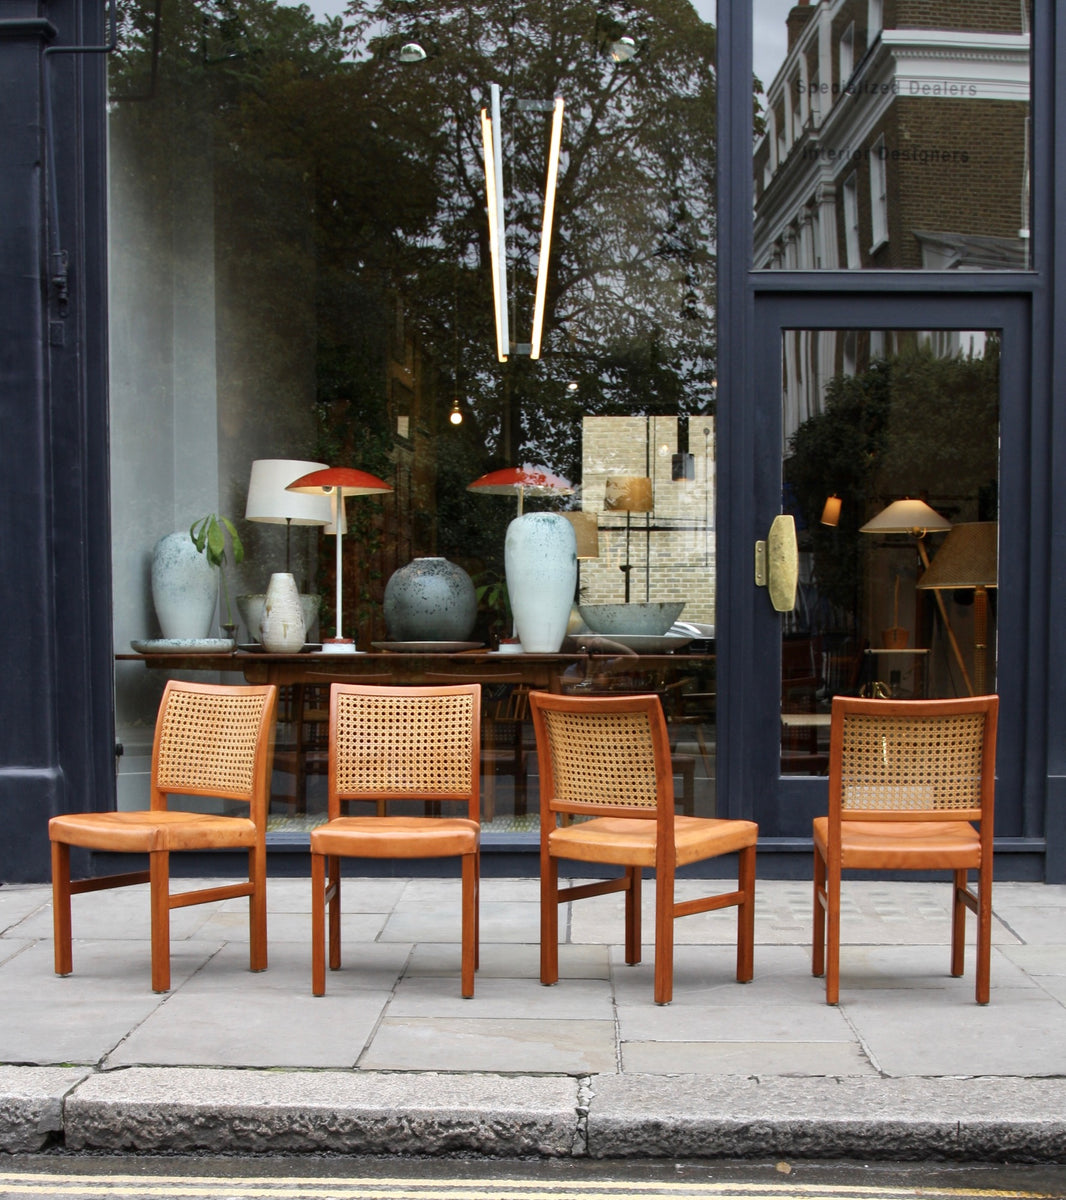 Four Teak, Leather & Cane Chairs Carl-Gustav Hiort af Ornäs  - Image 4